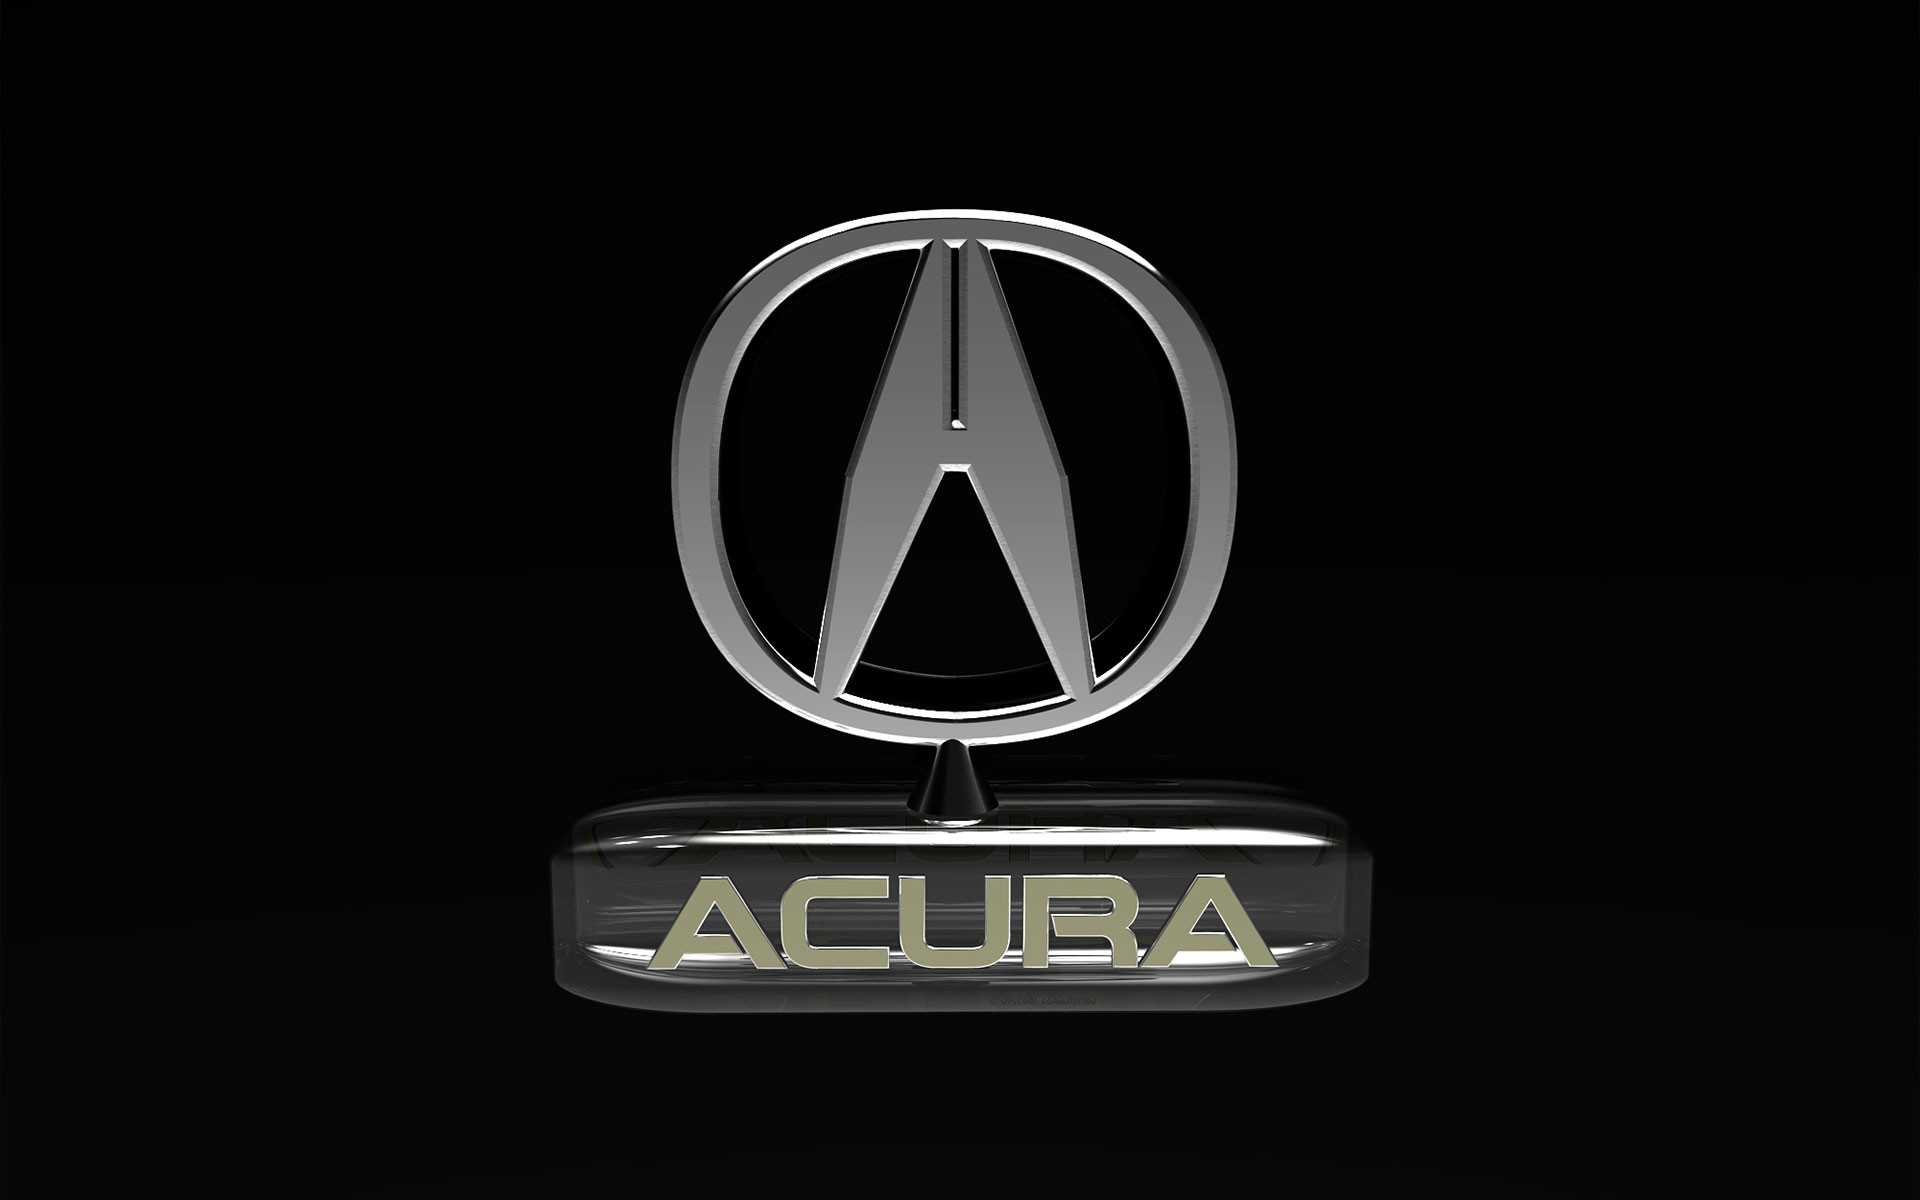 1920x1200 Acura Logo HD Wallpapers in HD